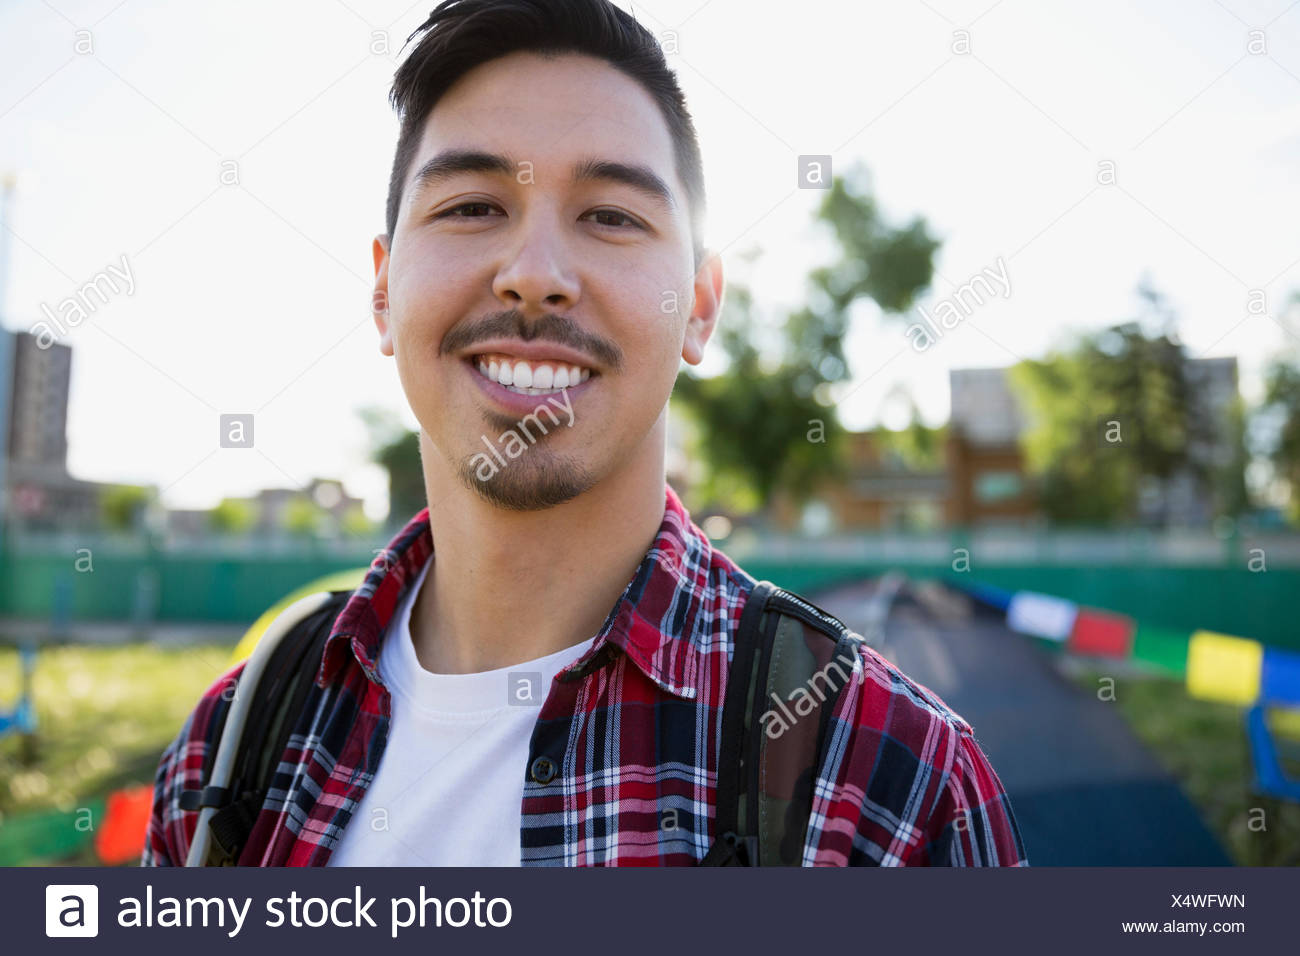 Portrait smiling young man with black hair and stubble smiling at summer music festival campsite - Stock Image